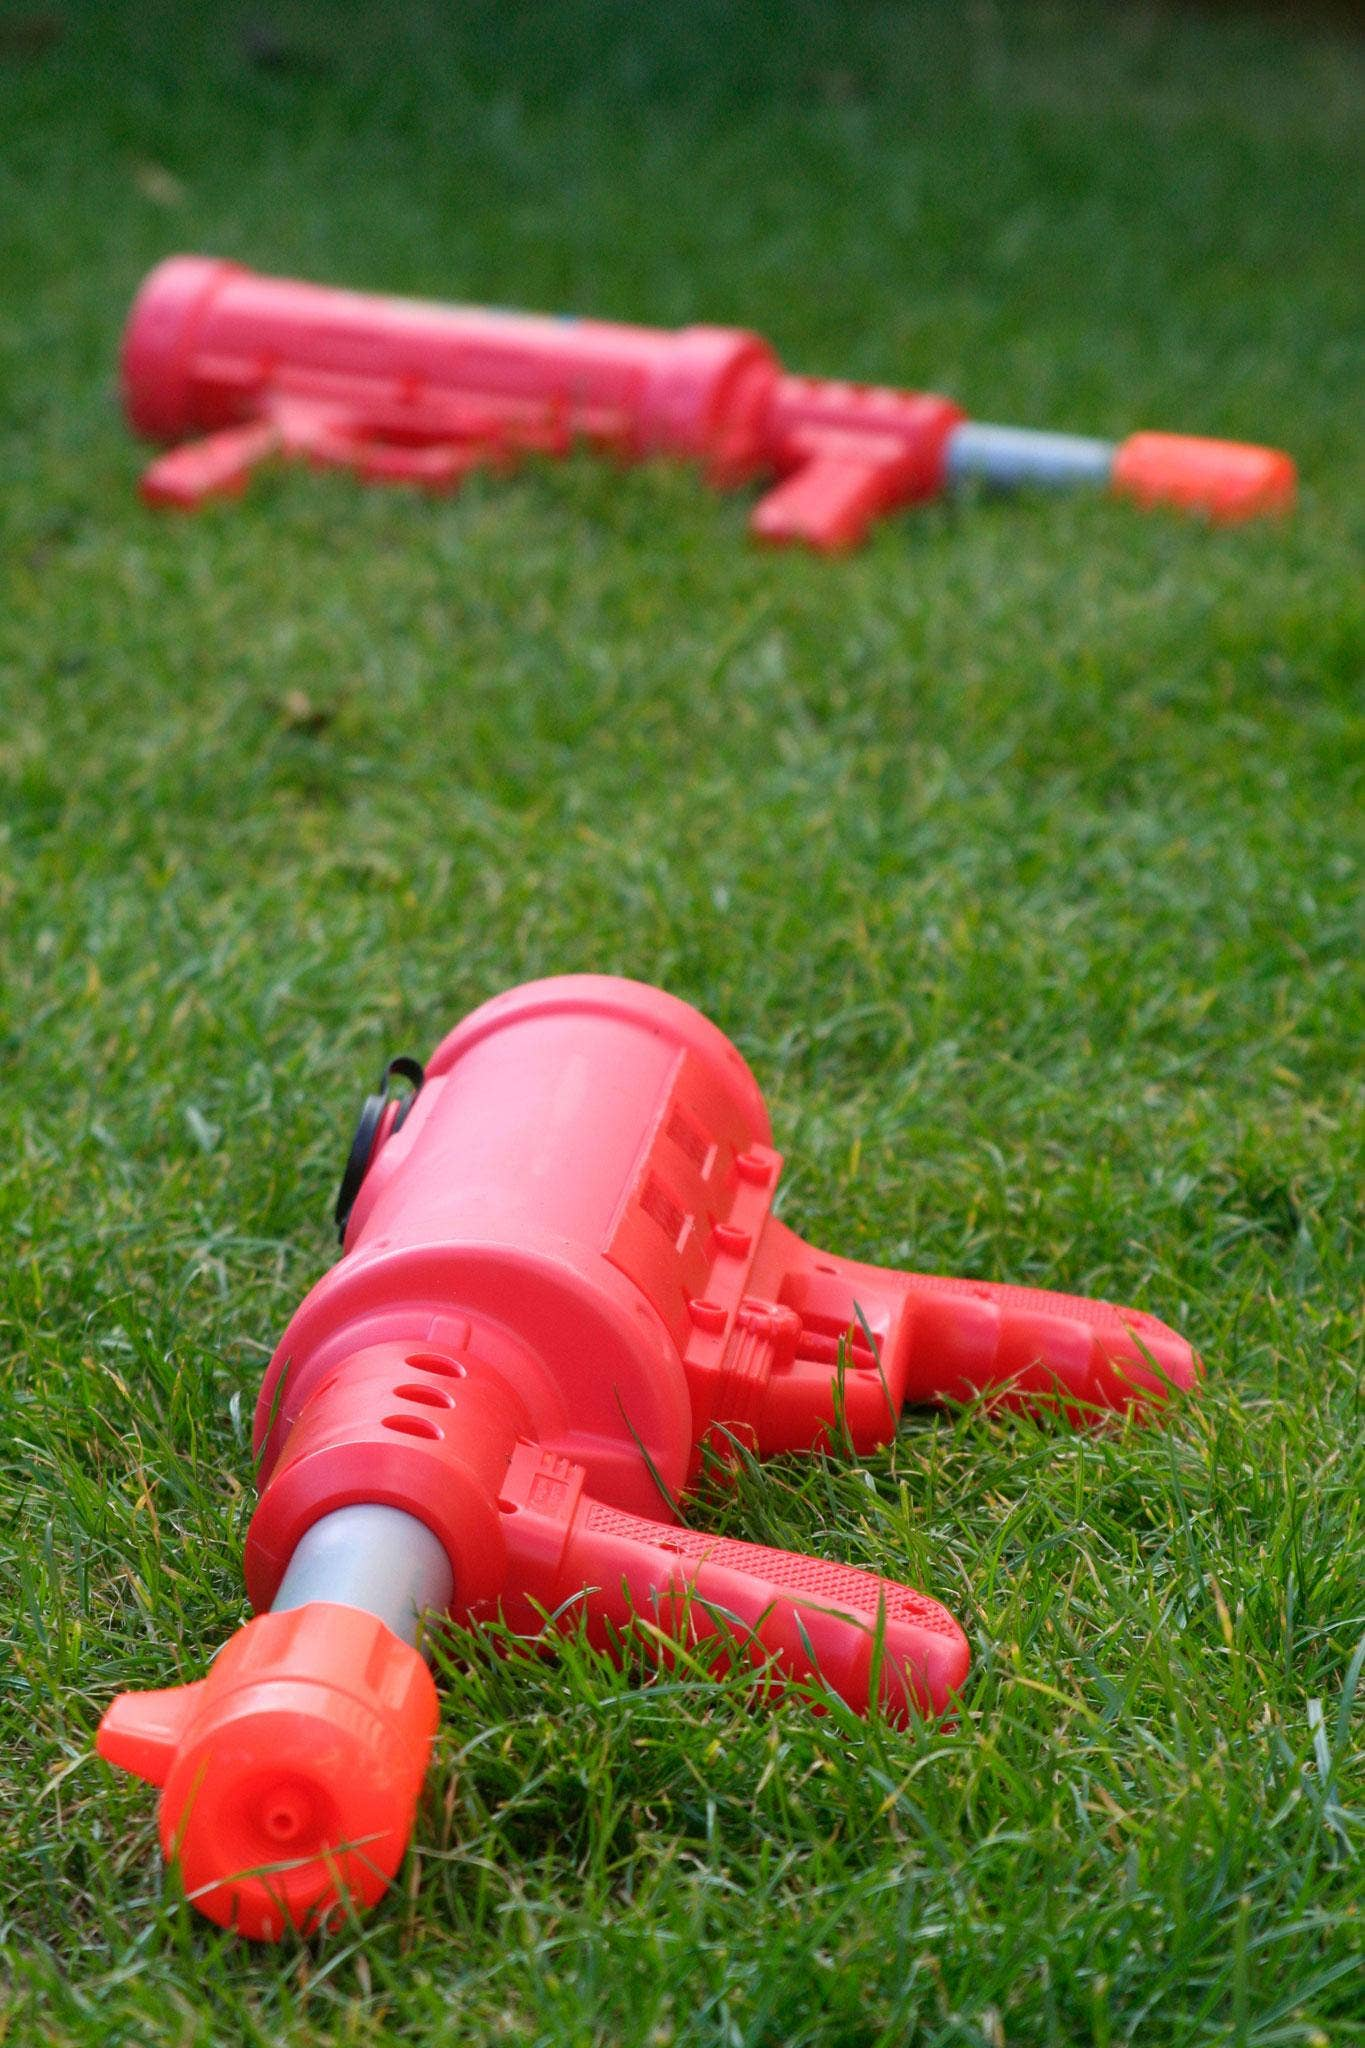 Water pistols can annoy liberals who are trying to keep their homes gun-free